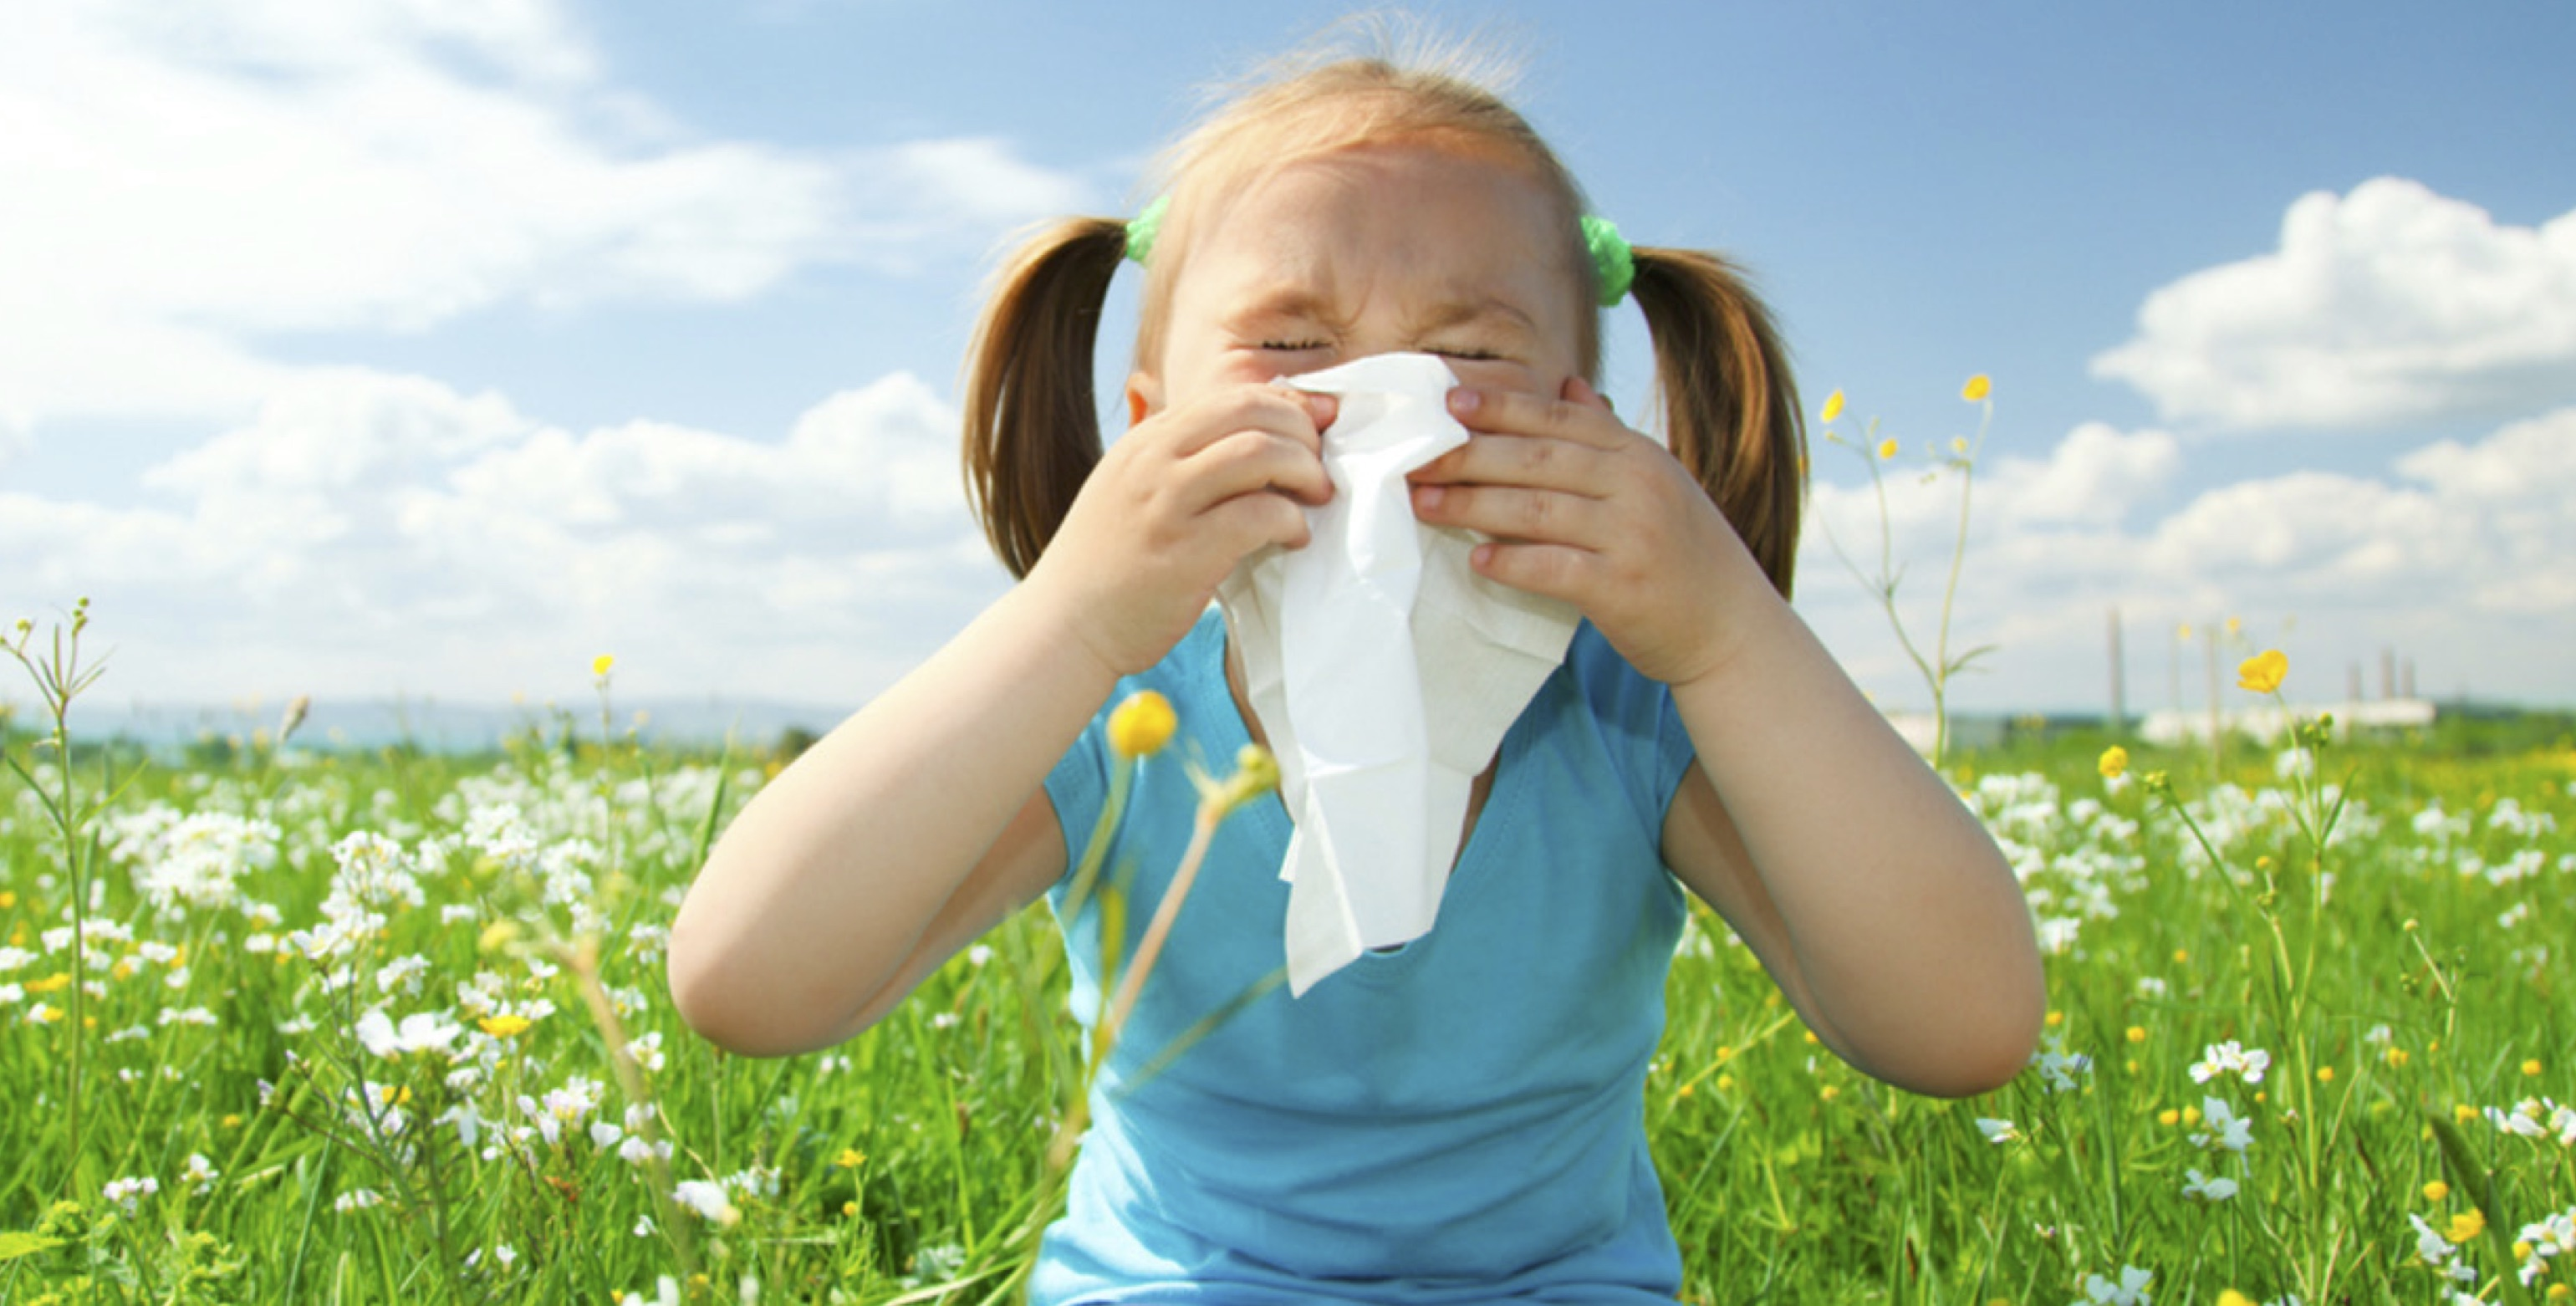 child hay fever